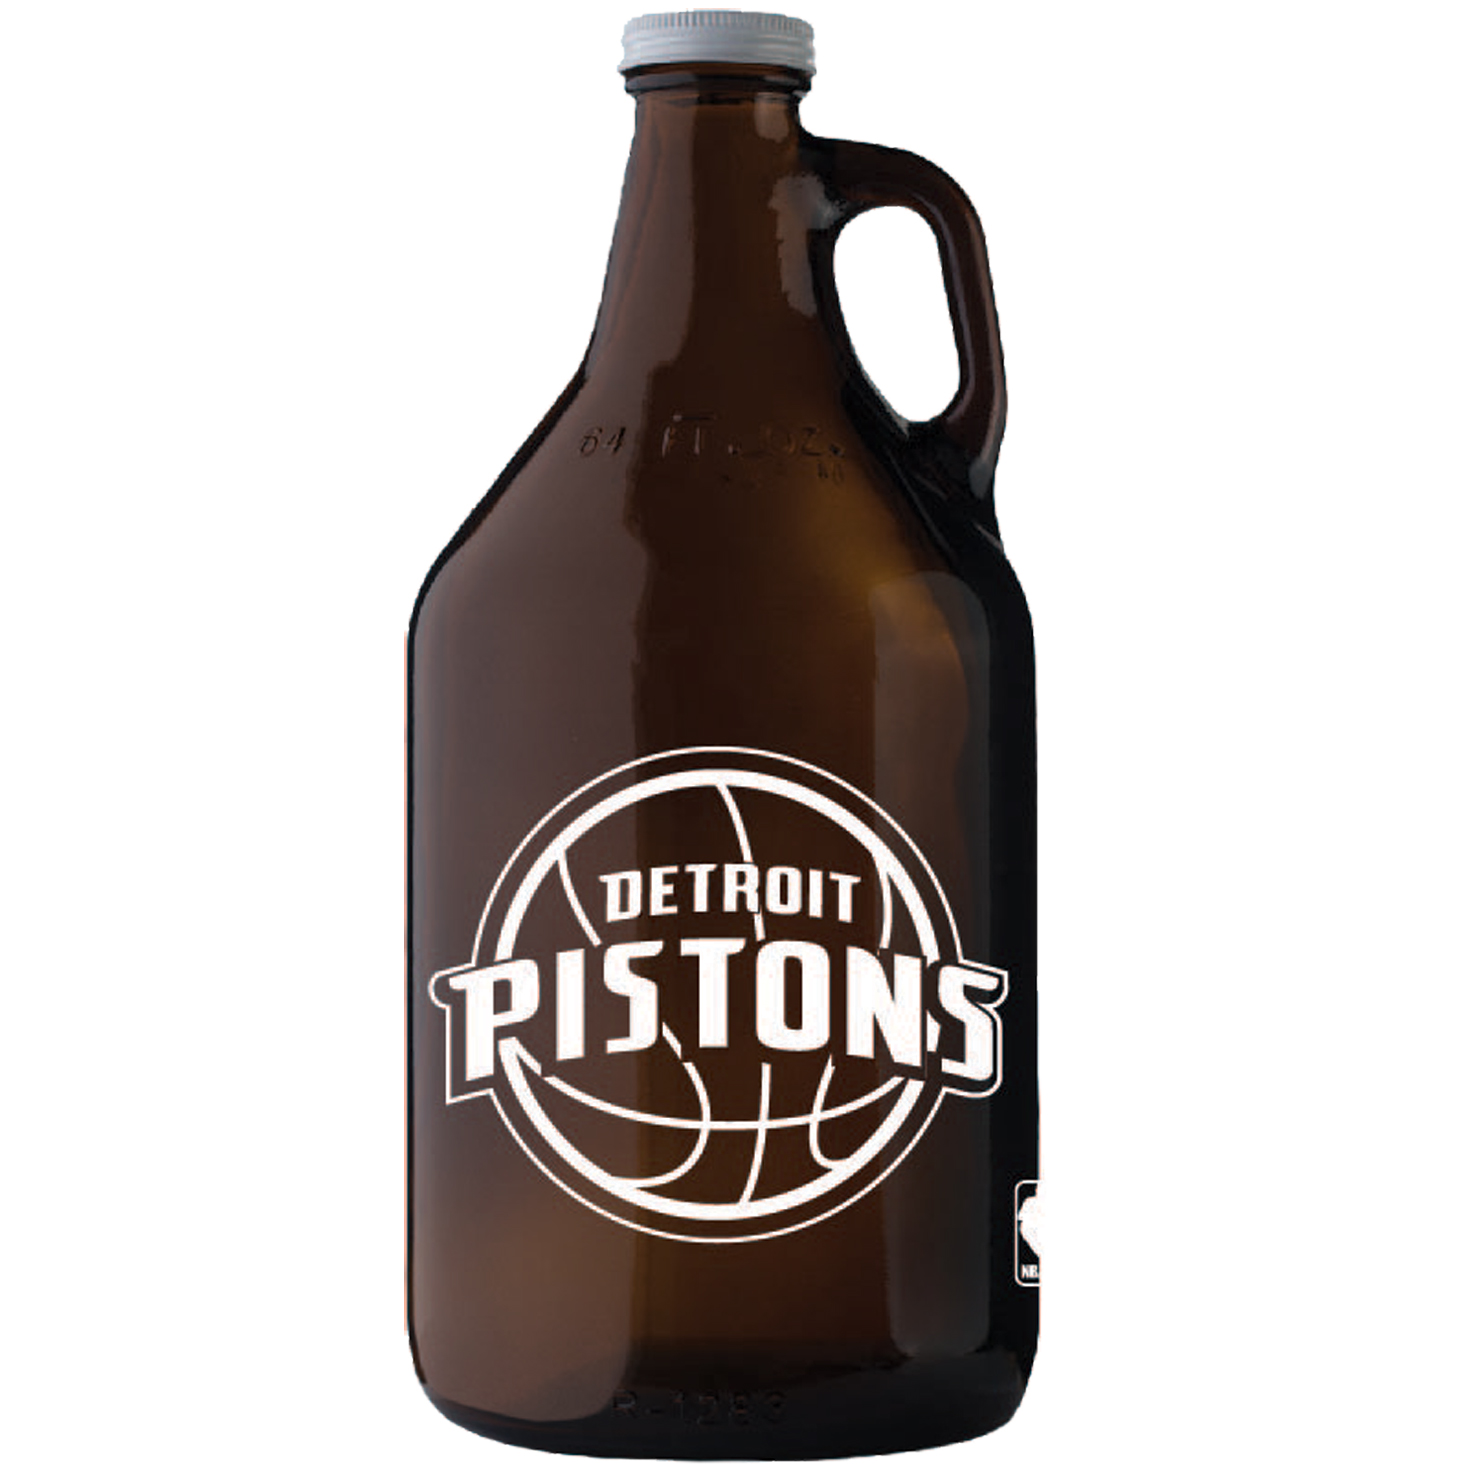 Detroit Pistons 64oz. Glass Jug - Amber - No Size